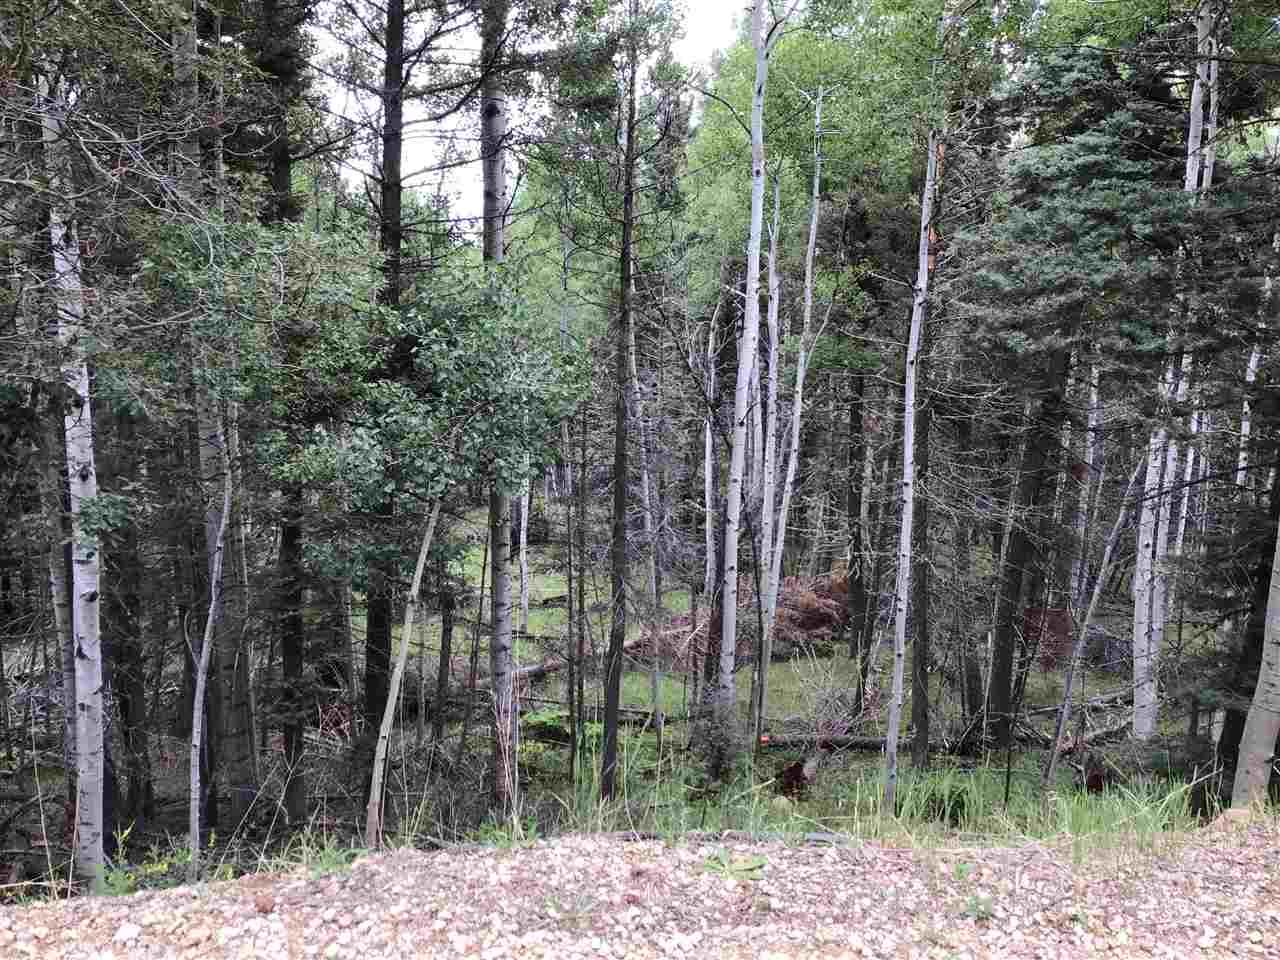 Photo for Lot 1169 Buena Vista Dr, Angel Fire, NM 87710 (MLS # 105479)